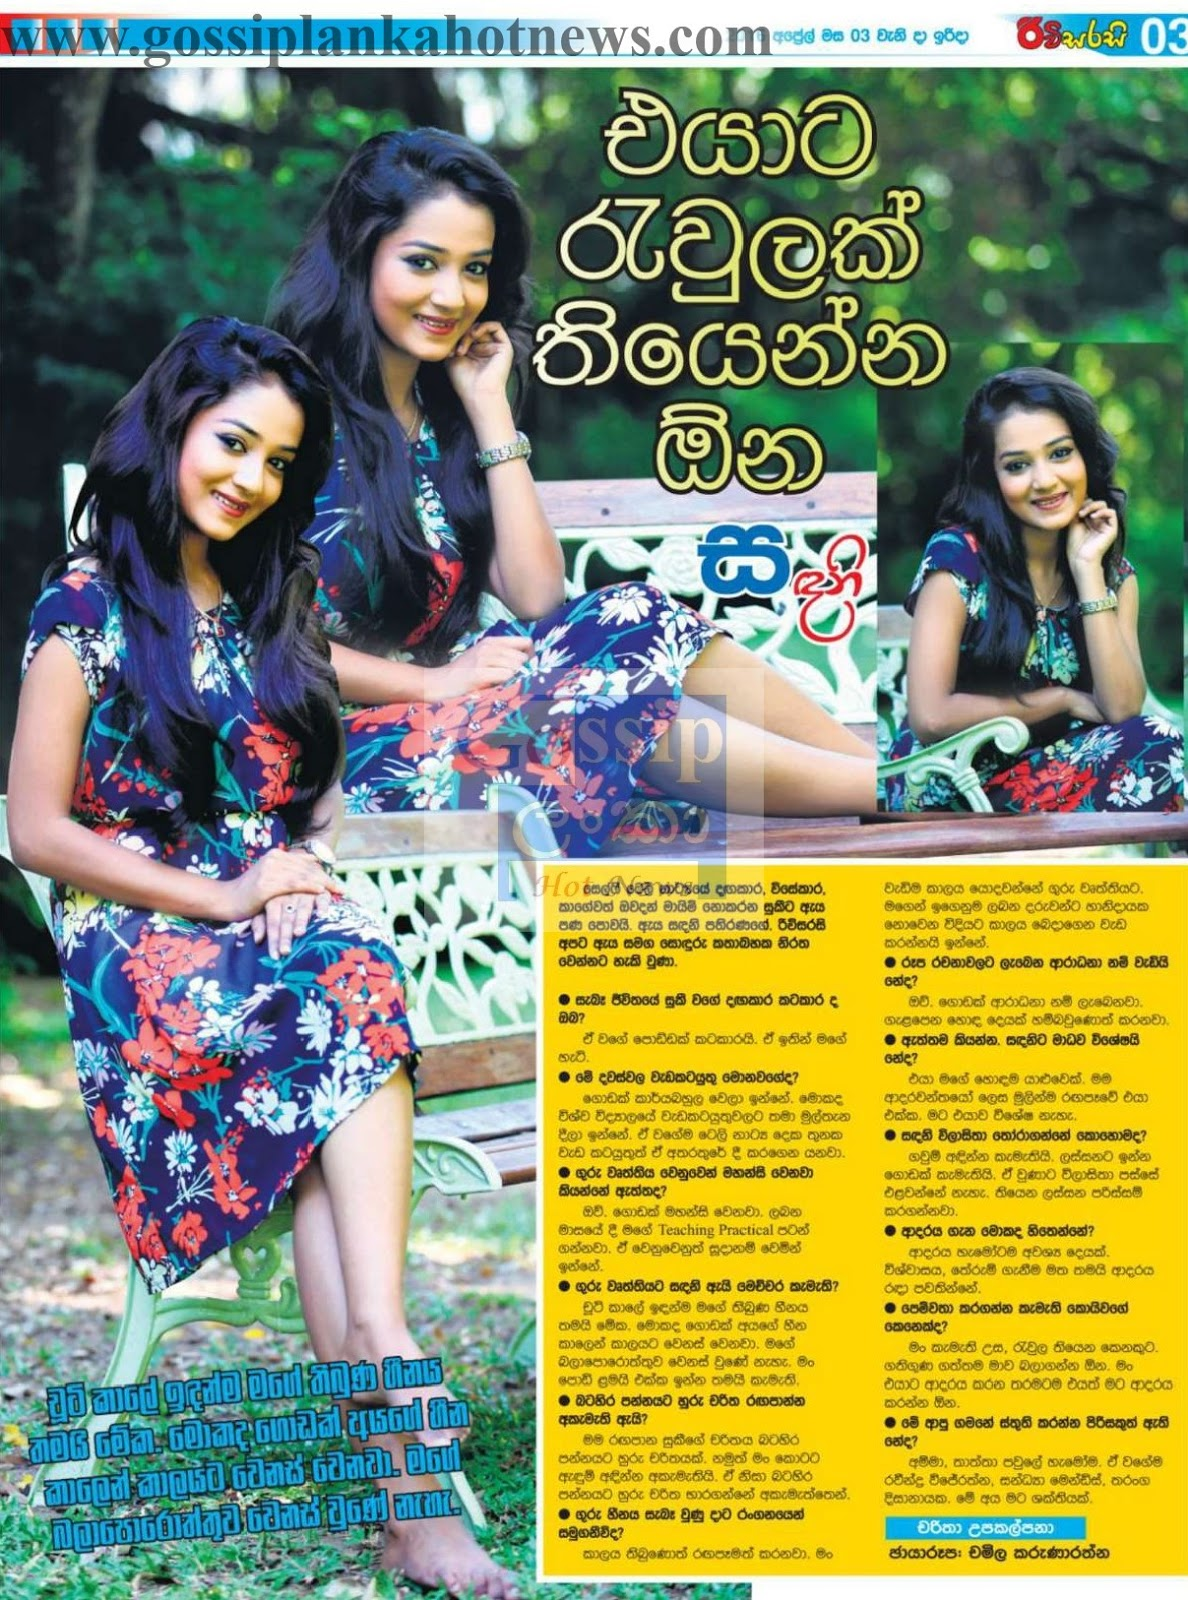 Gossip Chat with Sadani madhubhashani pathirana